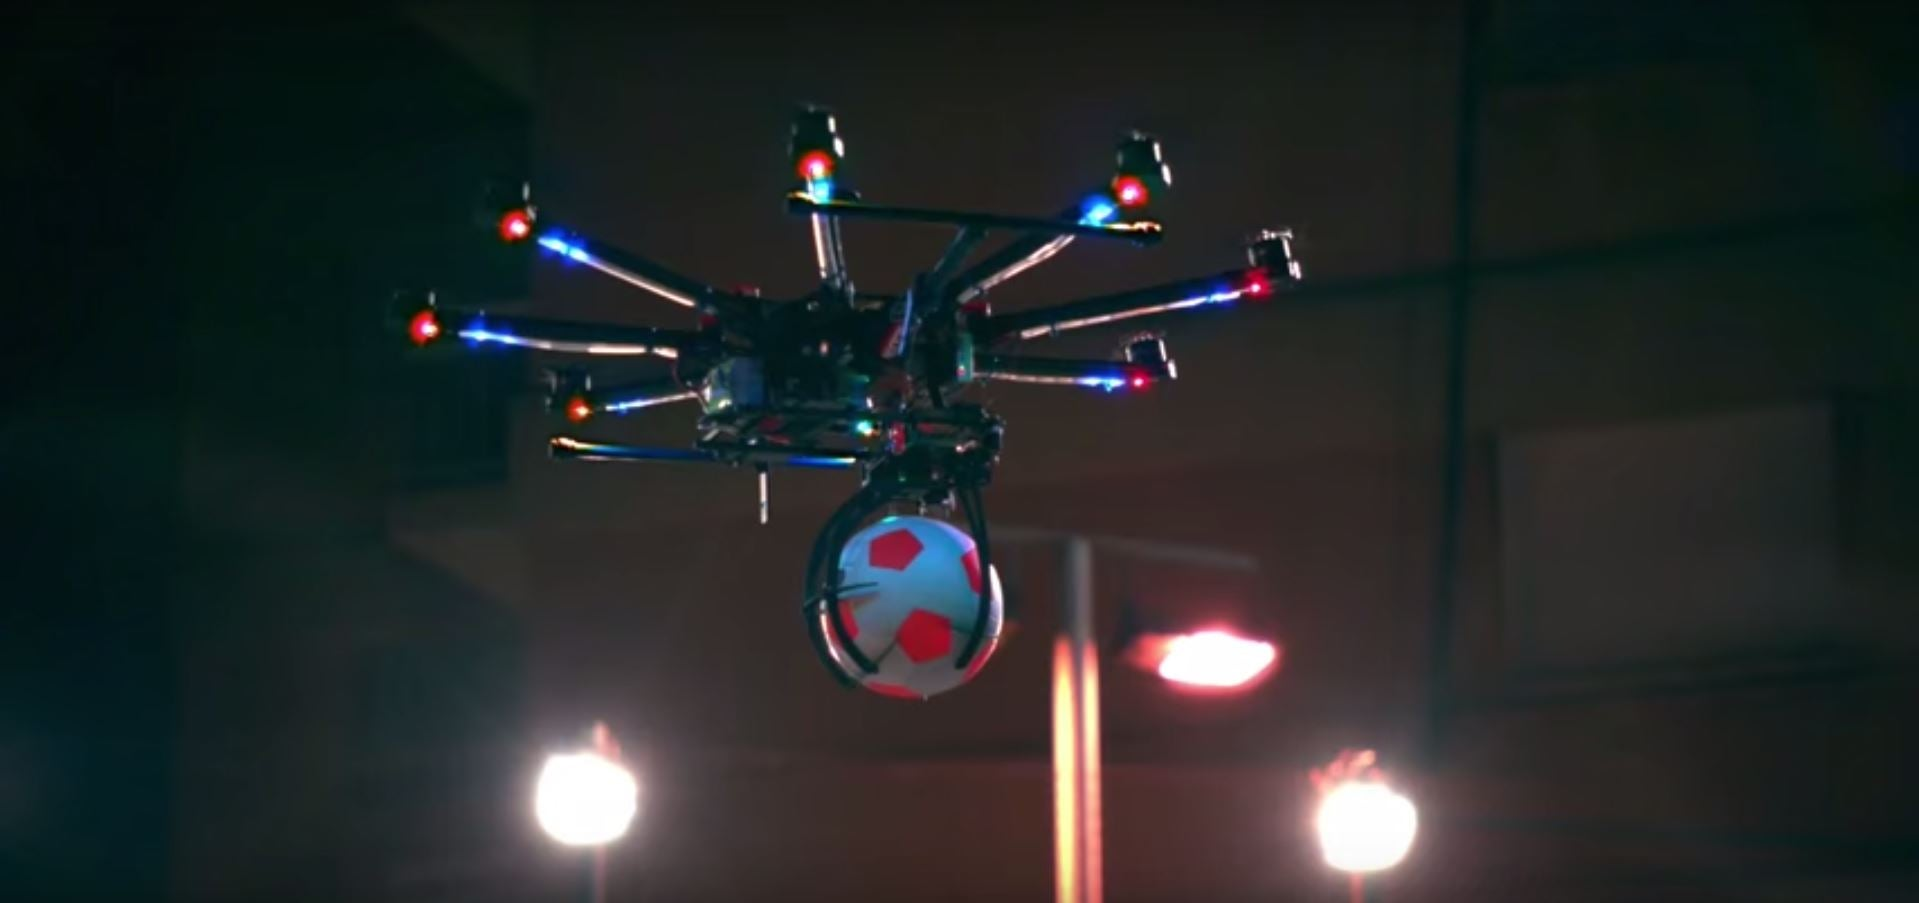 Pepsi Is Lying: This Is Not Drone Football